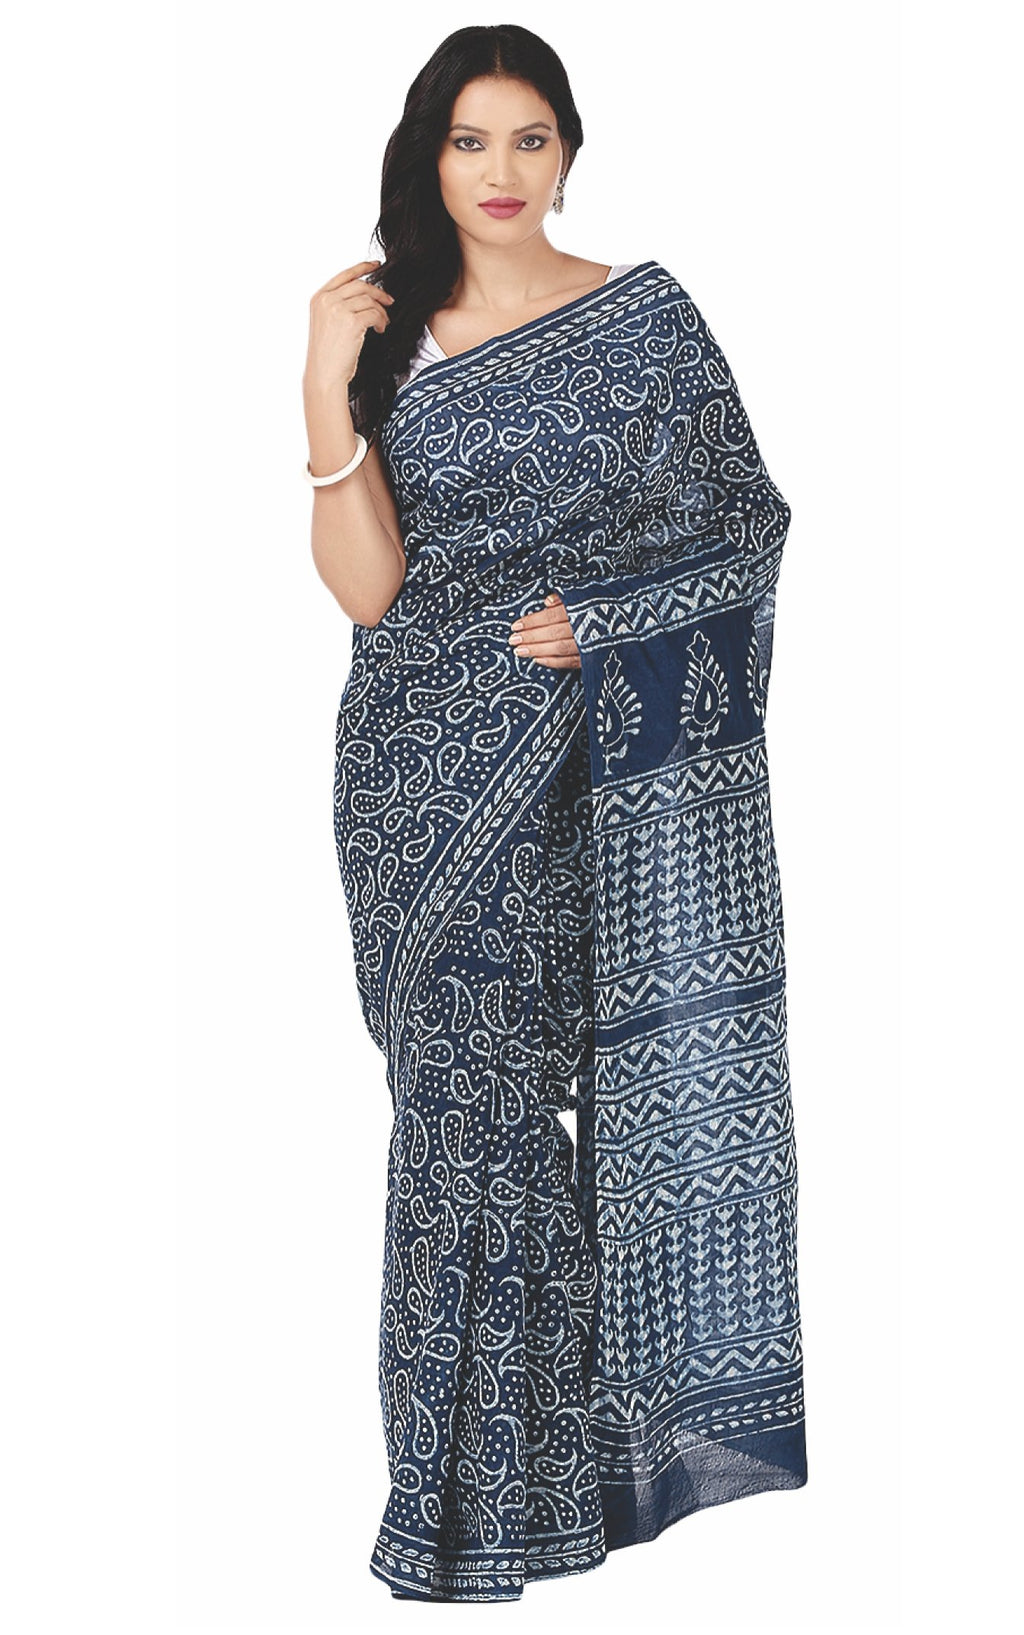 Indigo Dabu Hand Block Print Handcrafted Cotton Saree-Saree-Kalakari India-BAPASA0014-Cotton, Dabu, Geographical Indication, Hand Blocks, Hand Crafted, Heritage Prints, Indigo, Natural Dyes, Sarees, Sustainable Fabrics-[Linen,Ethnic,wear,Fashionista,Handloom,Handicraft,Indigo,blockprint,block,print,Cotton,Chanderi,Blue, latest,classy,party,bollywood,trendy,summer,style,traditional,formal,elegant,unique,style,hand,block,print, dabu,booti,gift,present,glamorous,affordable,collectible,Sari,Saree,pr